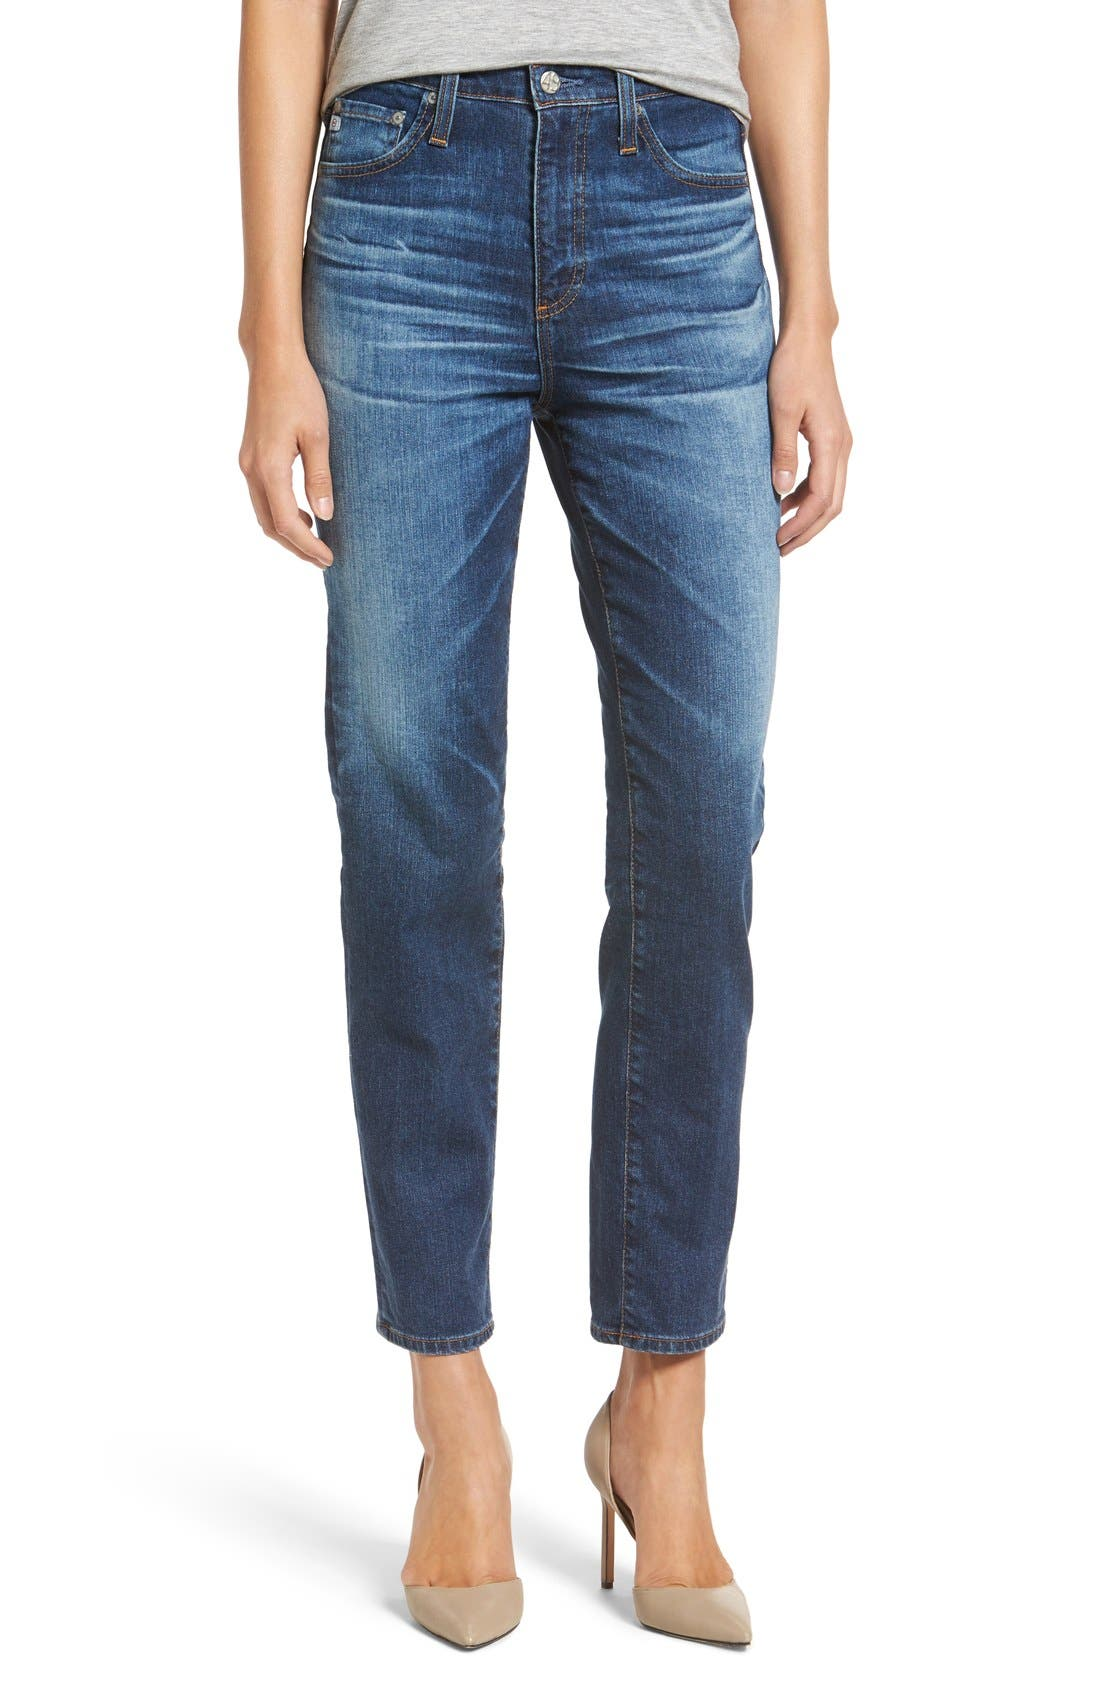 'The Phoebe' Vintage High Rise Straight Leg Jeans,                         Main,                         color, 10Y Wick